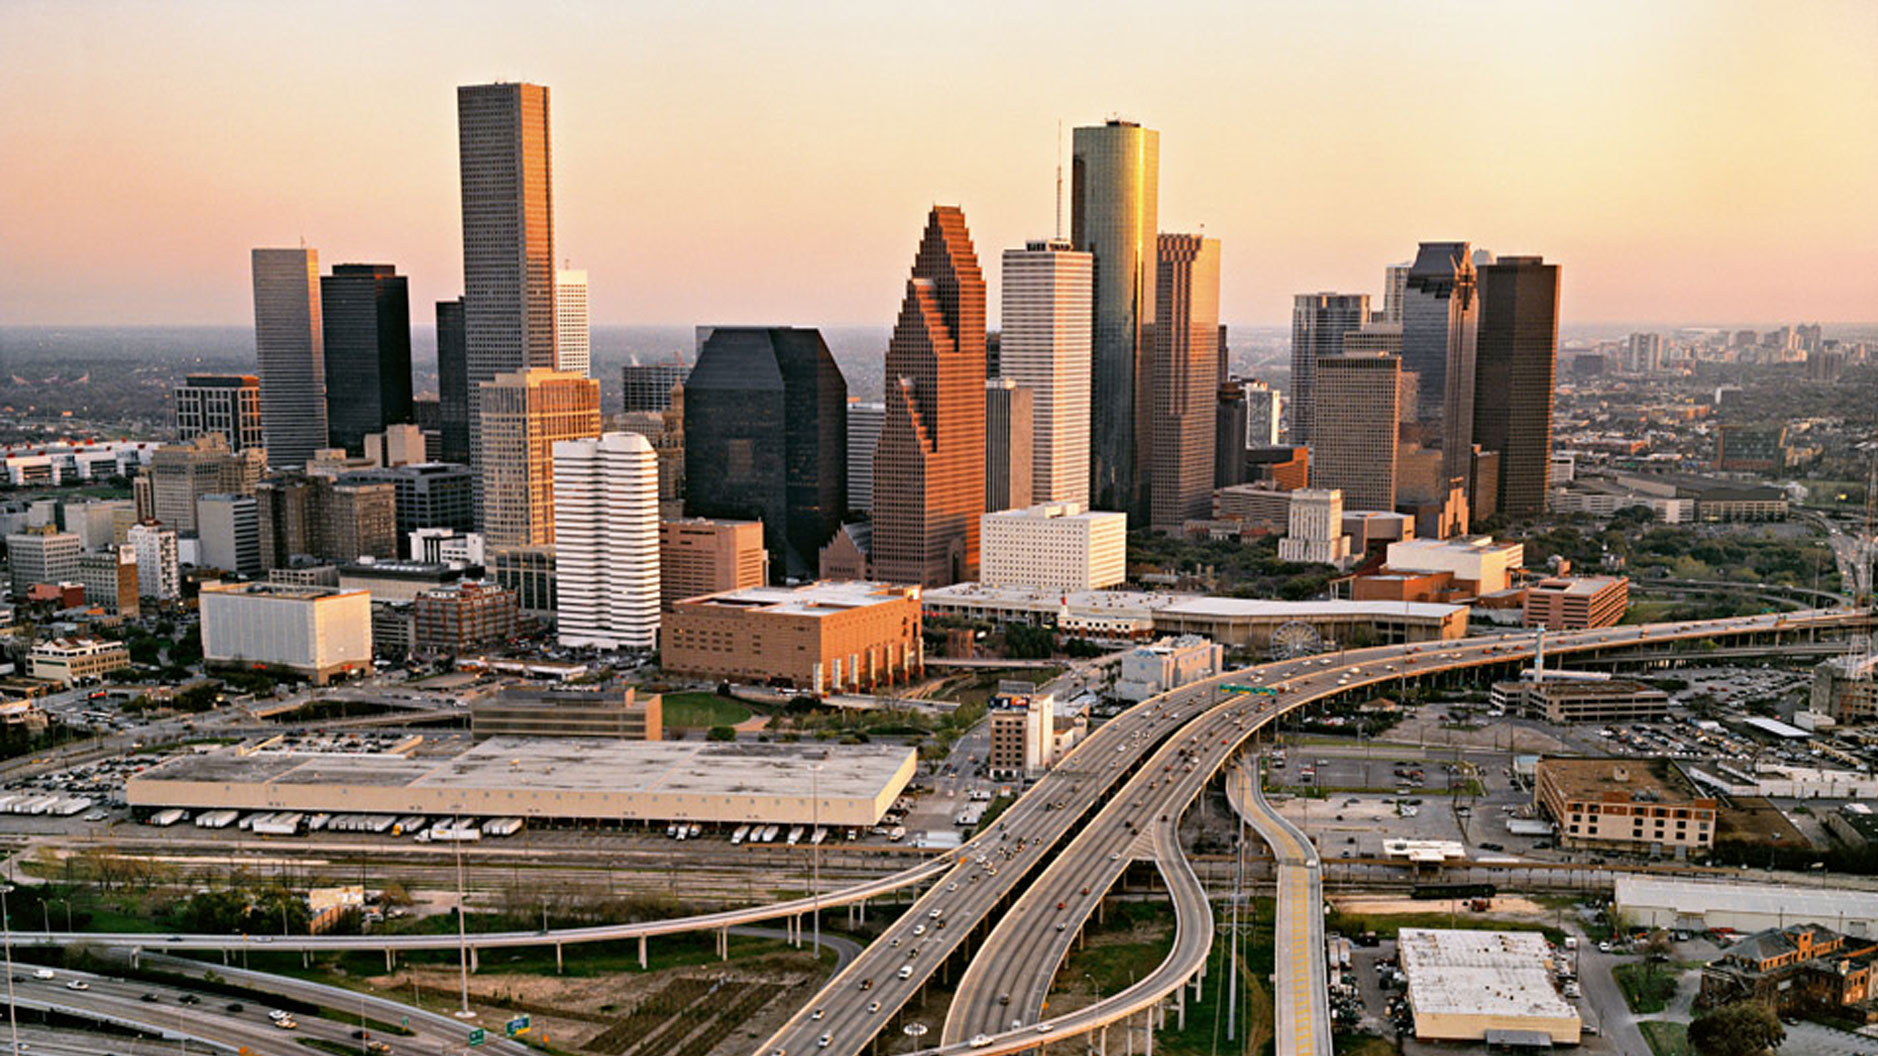 Houston, the largest city of Texas